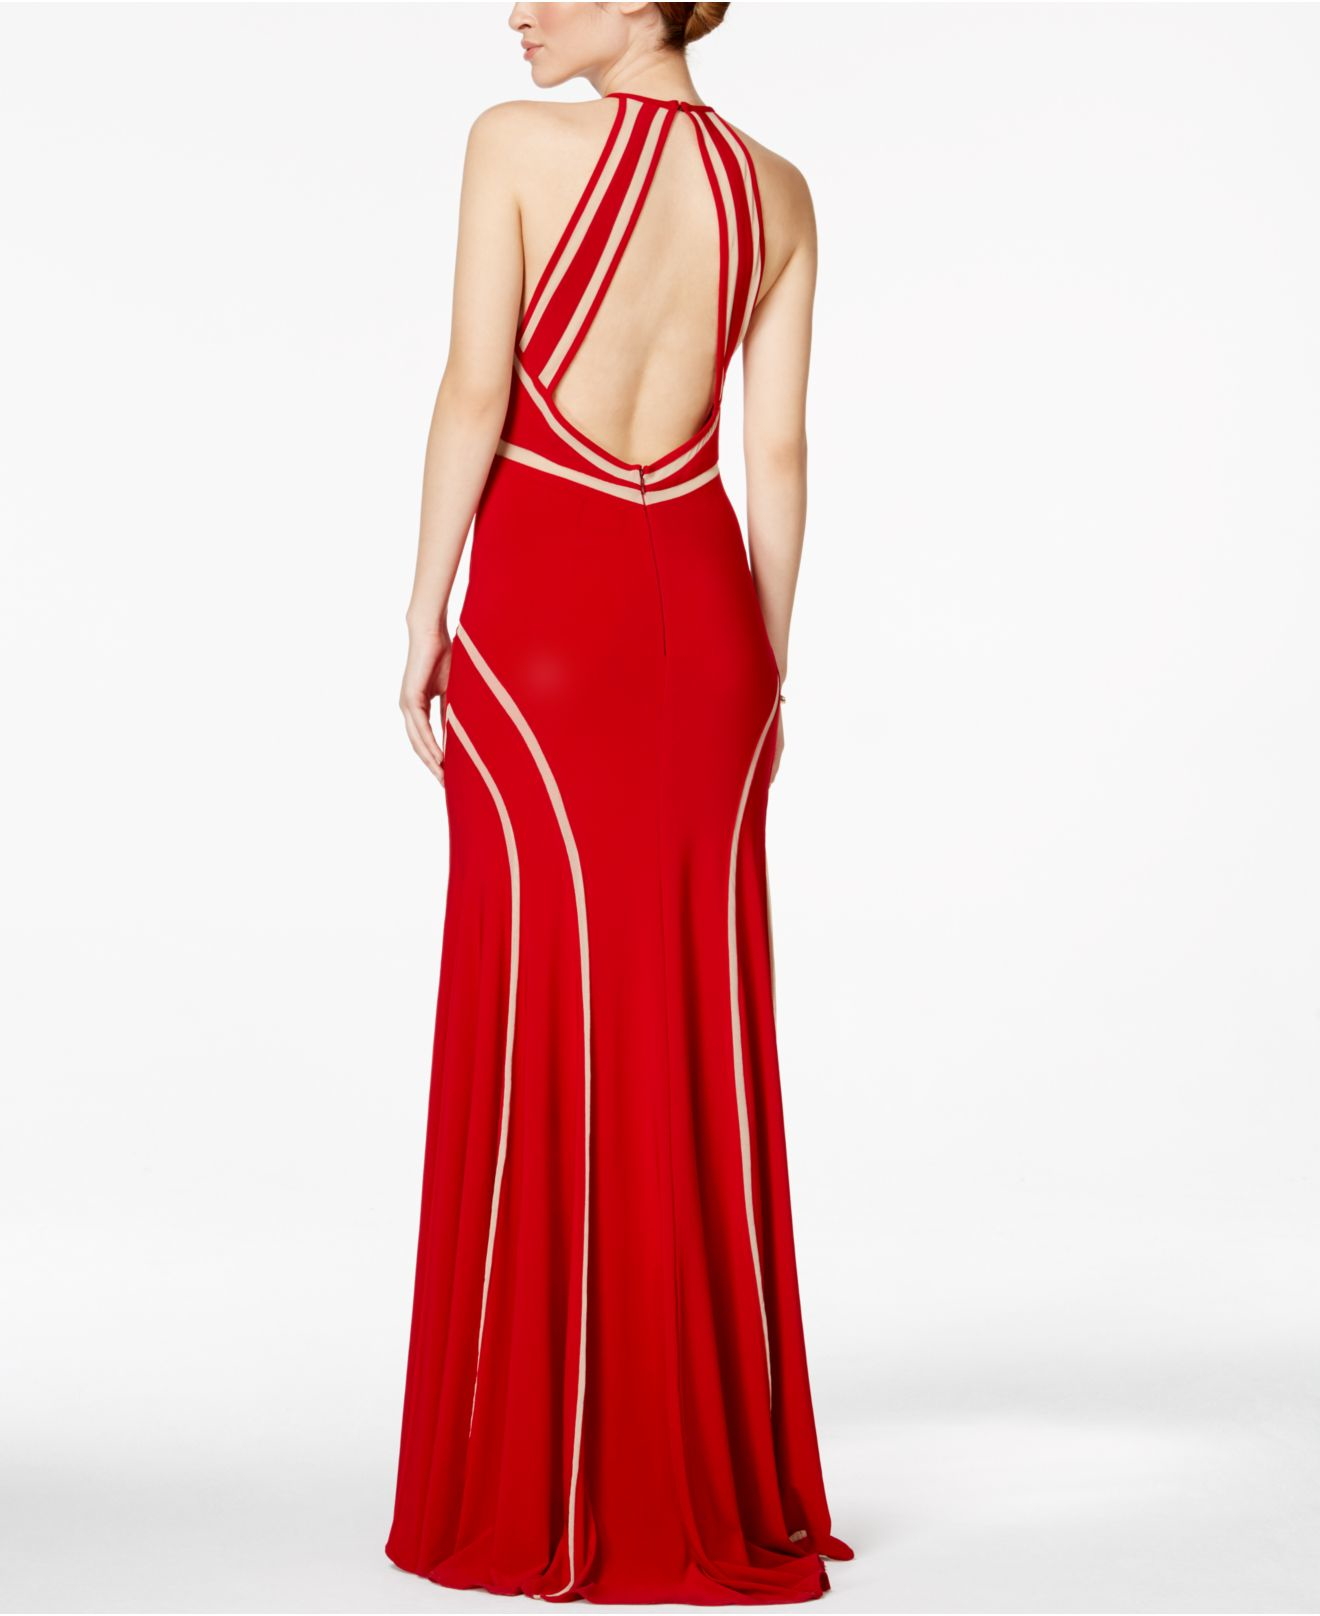 Lyst - Xscape Illusion Striped Halter Gown in Red